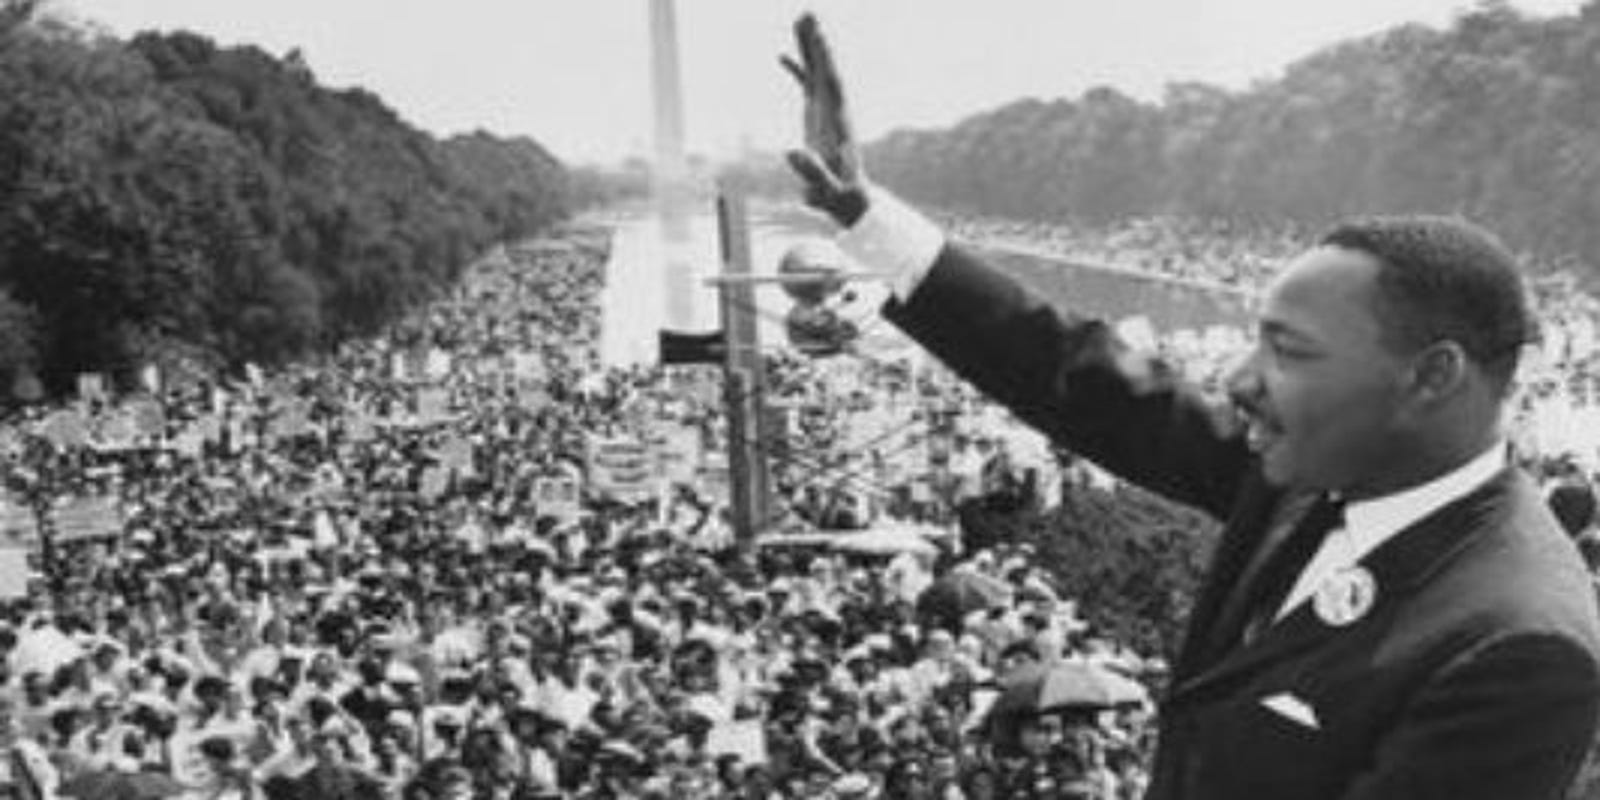 Closures, events planned in El Paso in commemoration of Martin Luther King Jr. Day